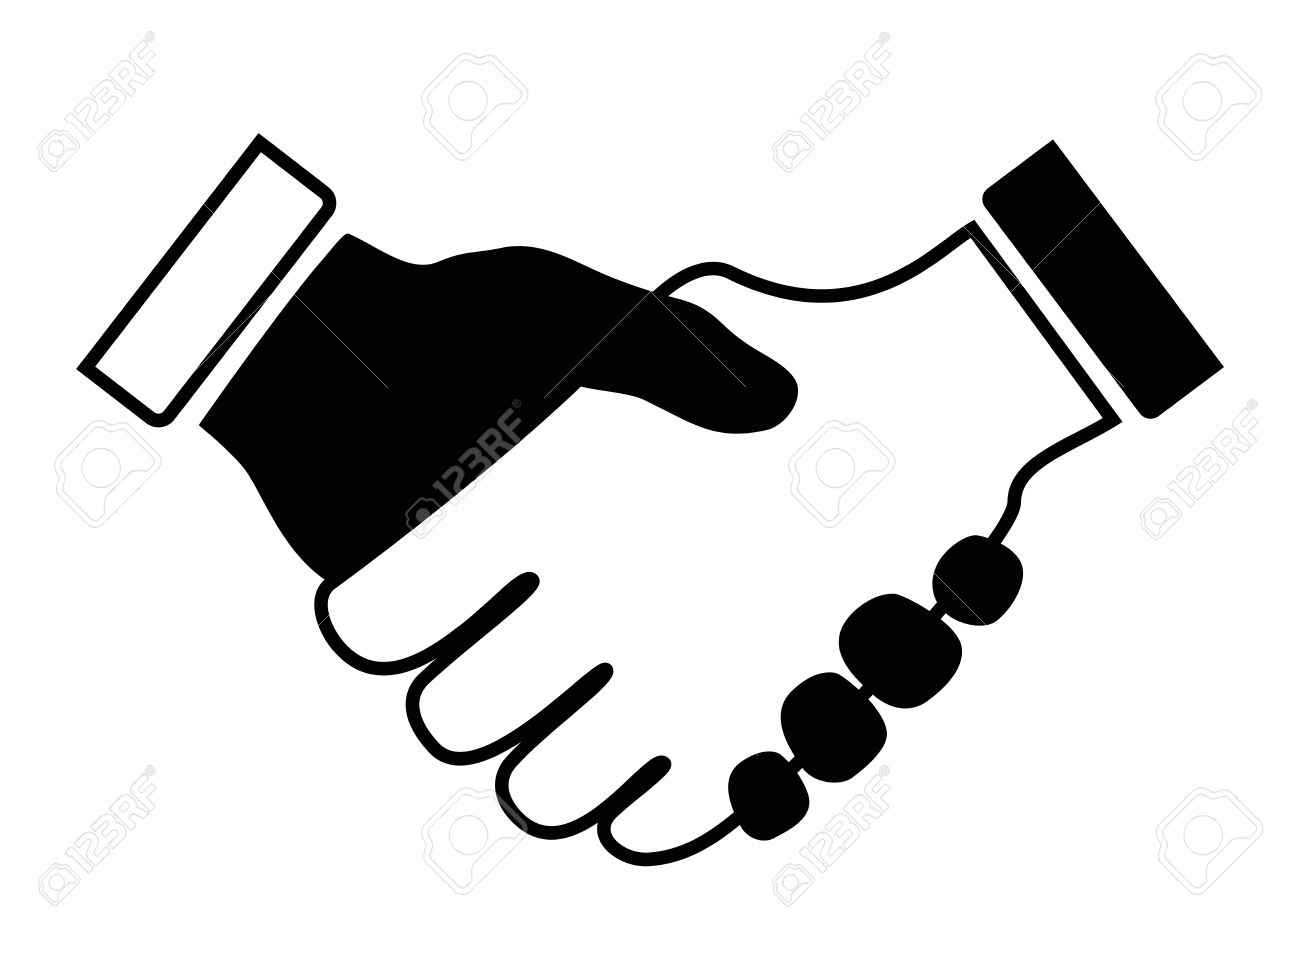 hand shake icon black and white royalty free cliparts vectors and rh 123rf com corporate handshake clipart handshake clipart black and white